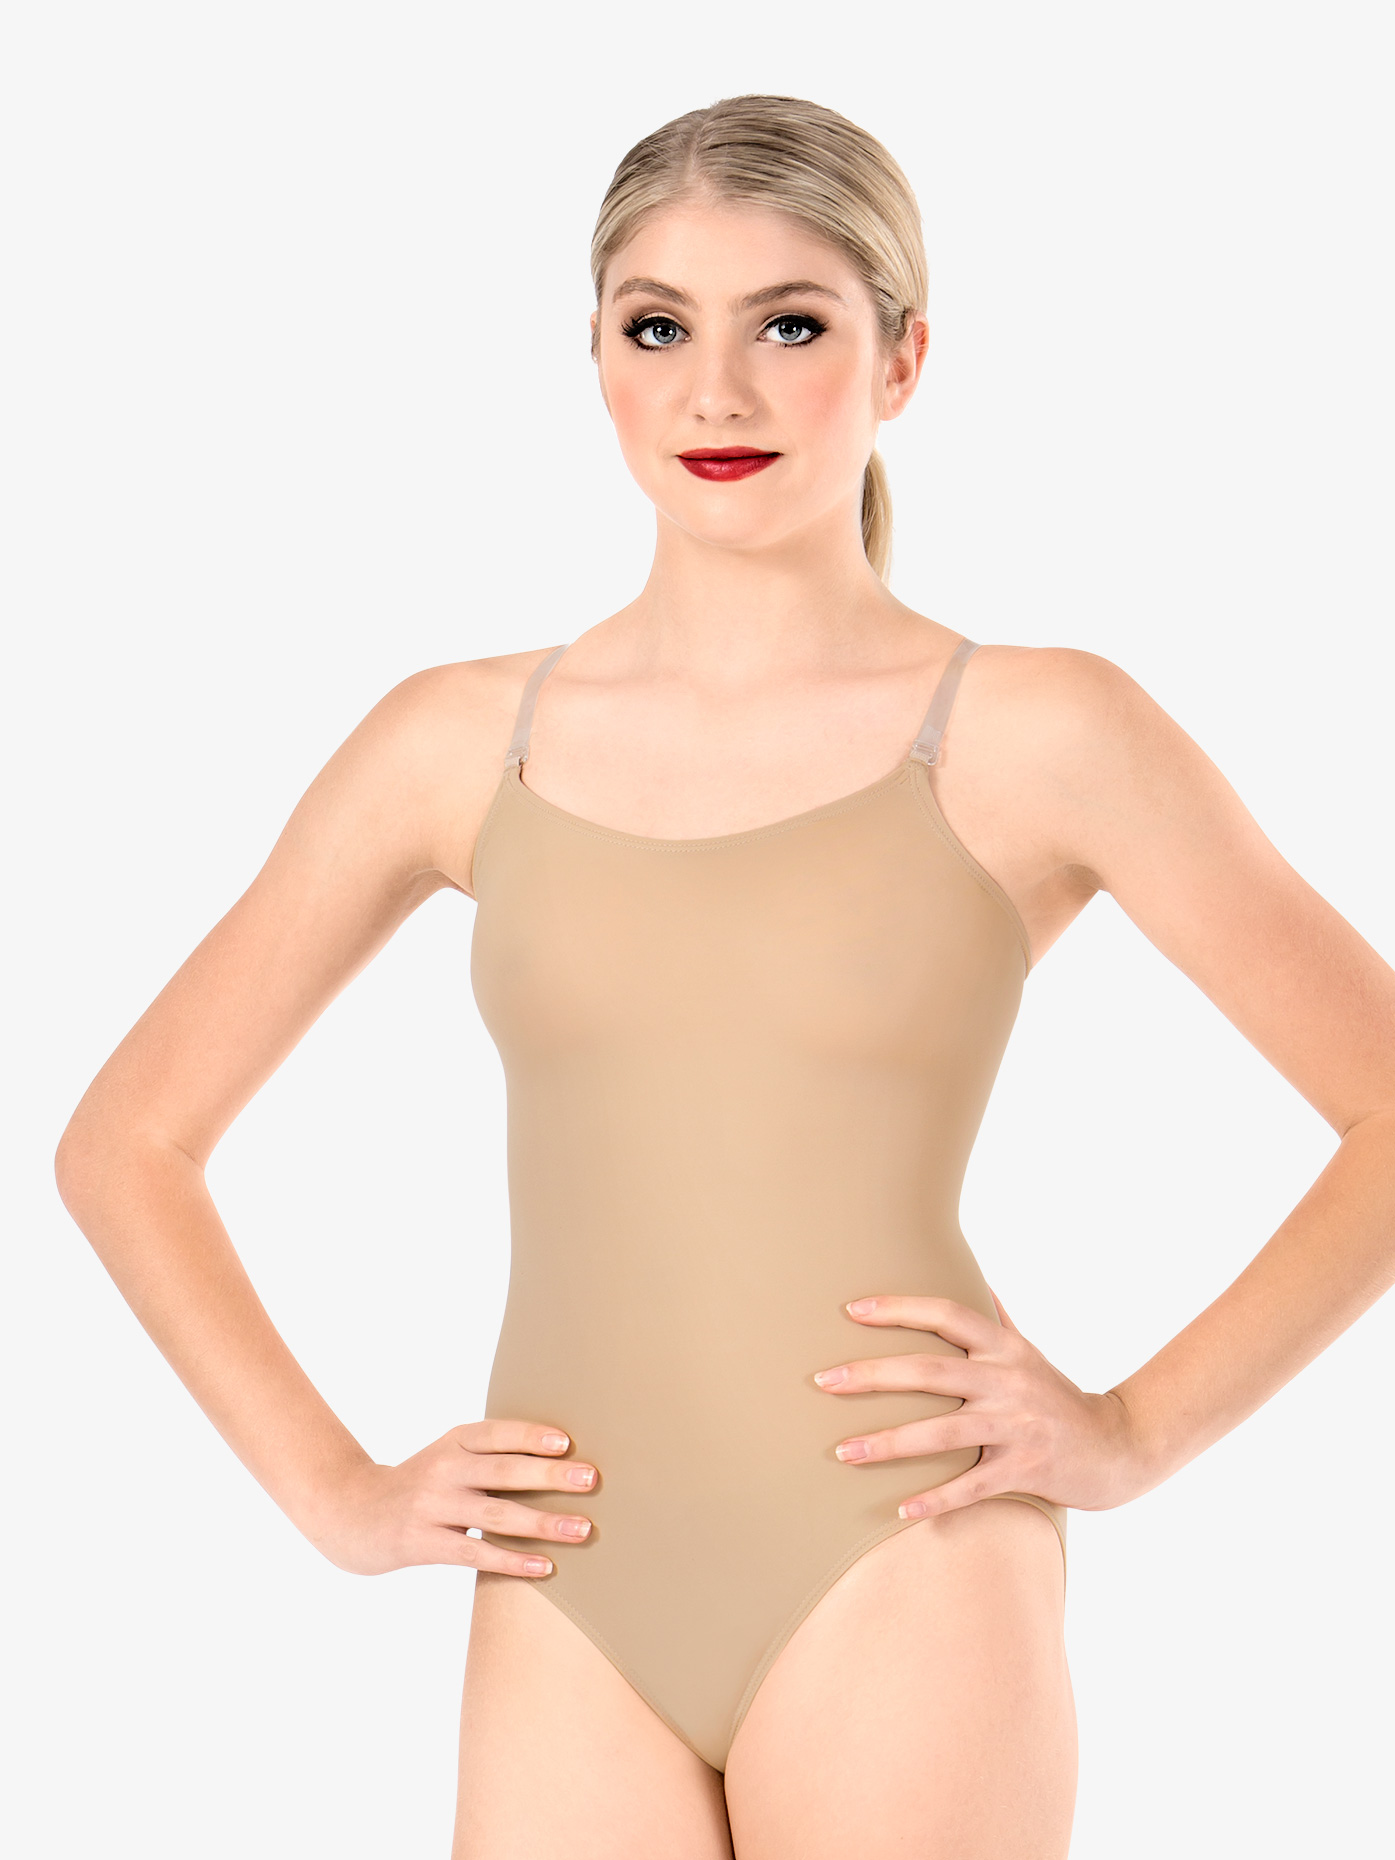 Body Wrappers Adult Camisole Leotard with See-Through Straps 266